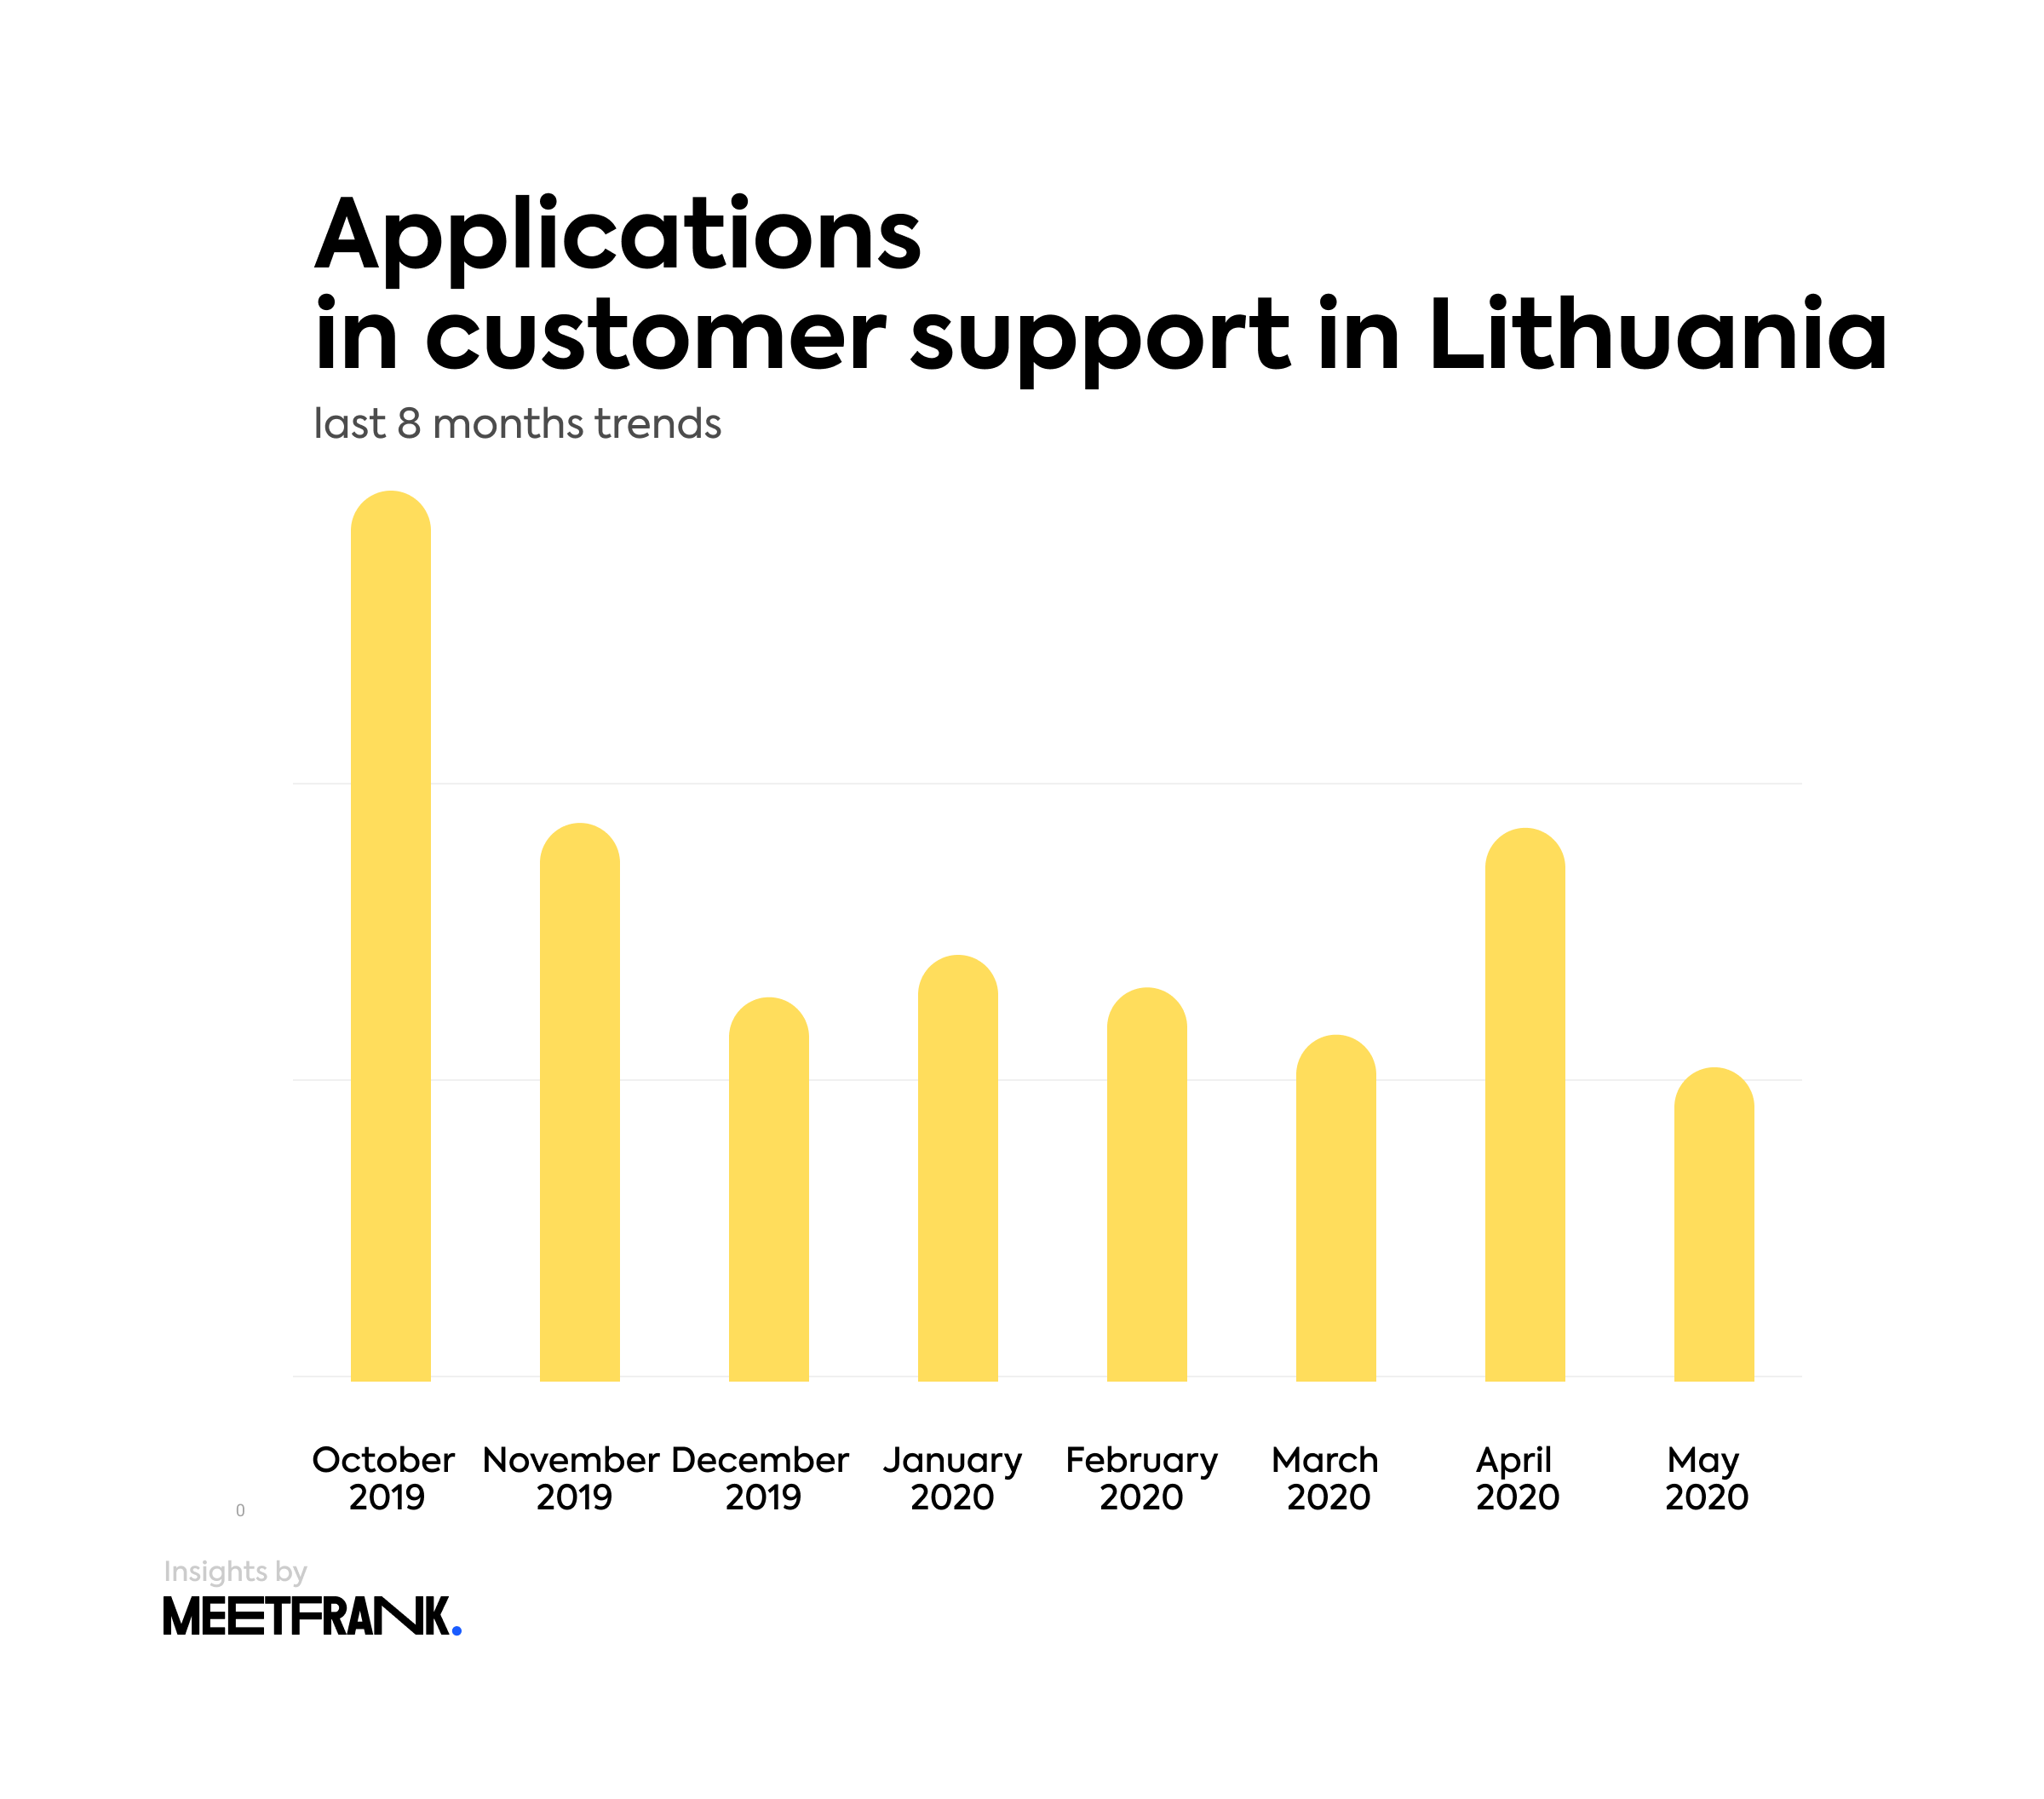 the number of applications in customer support in Lithuania